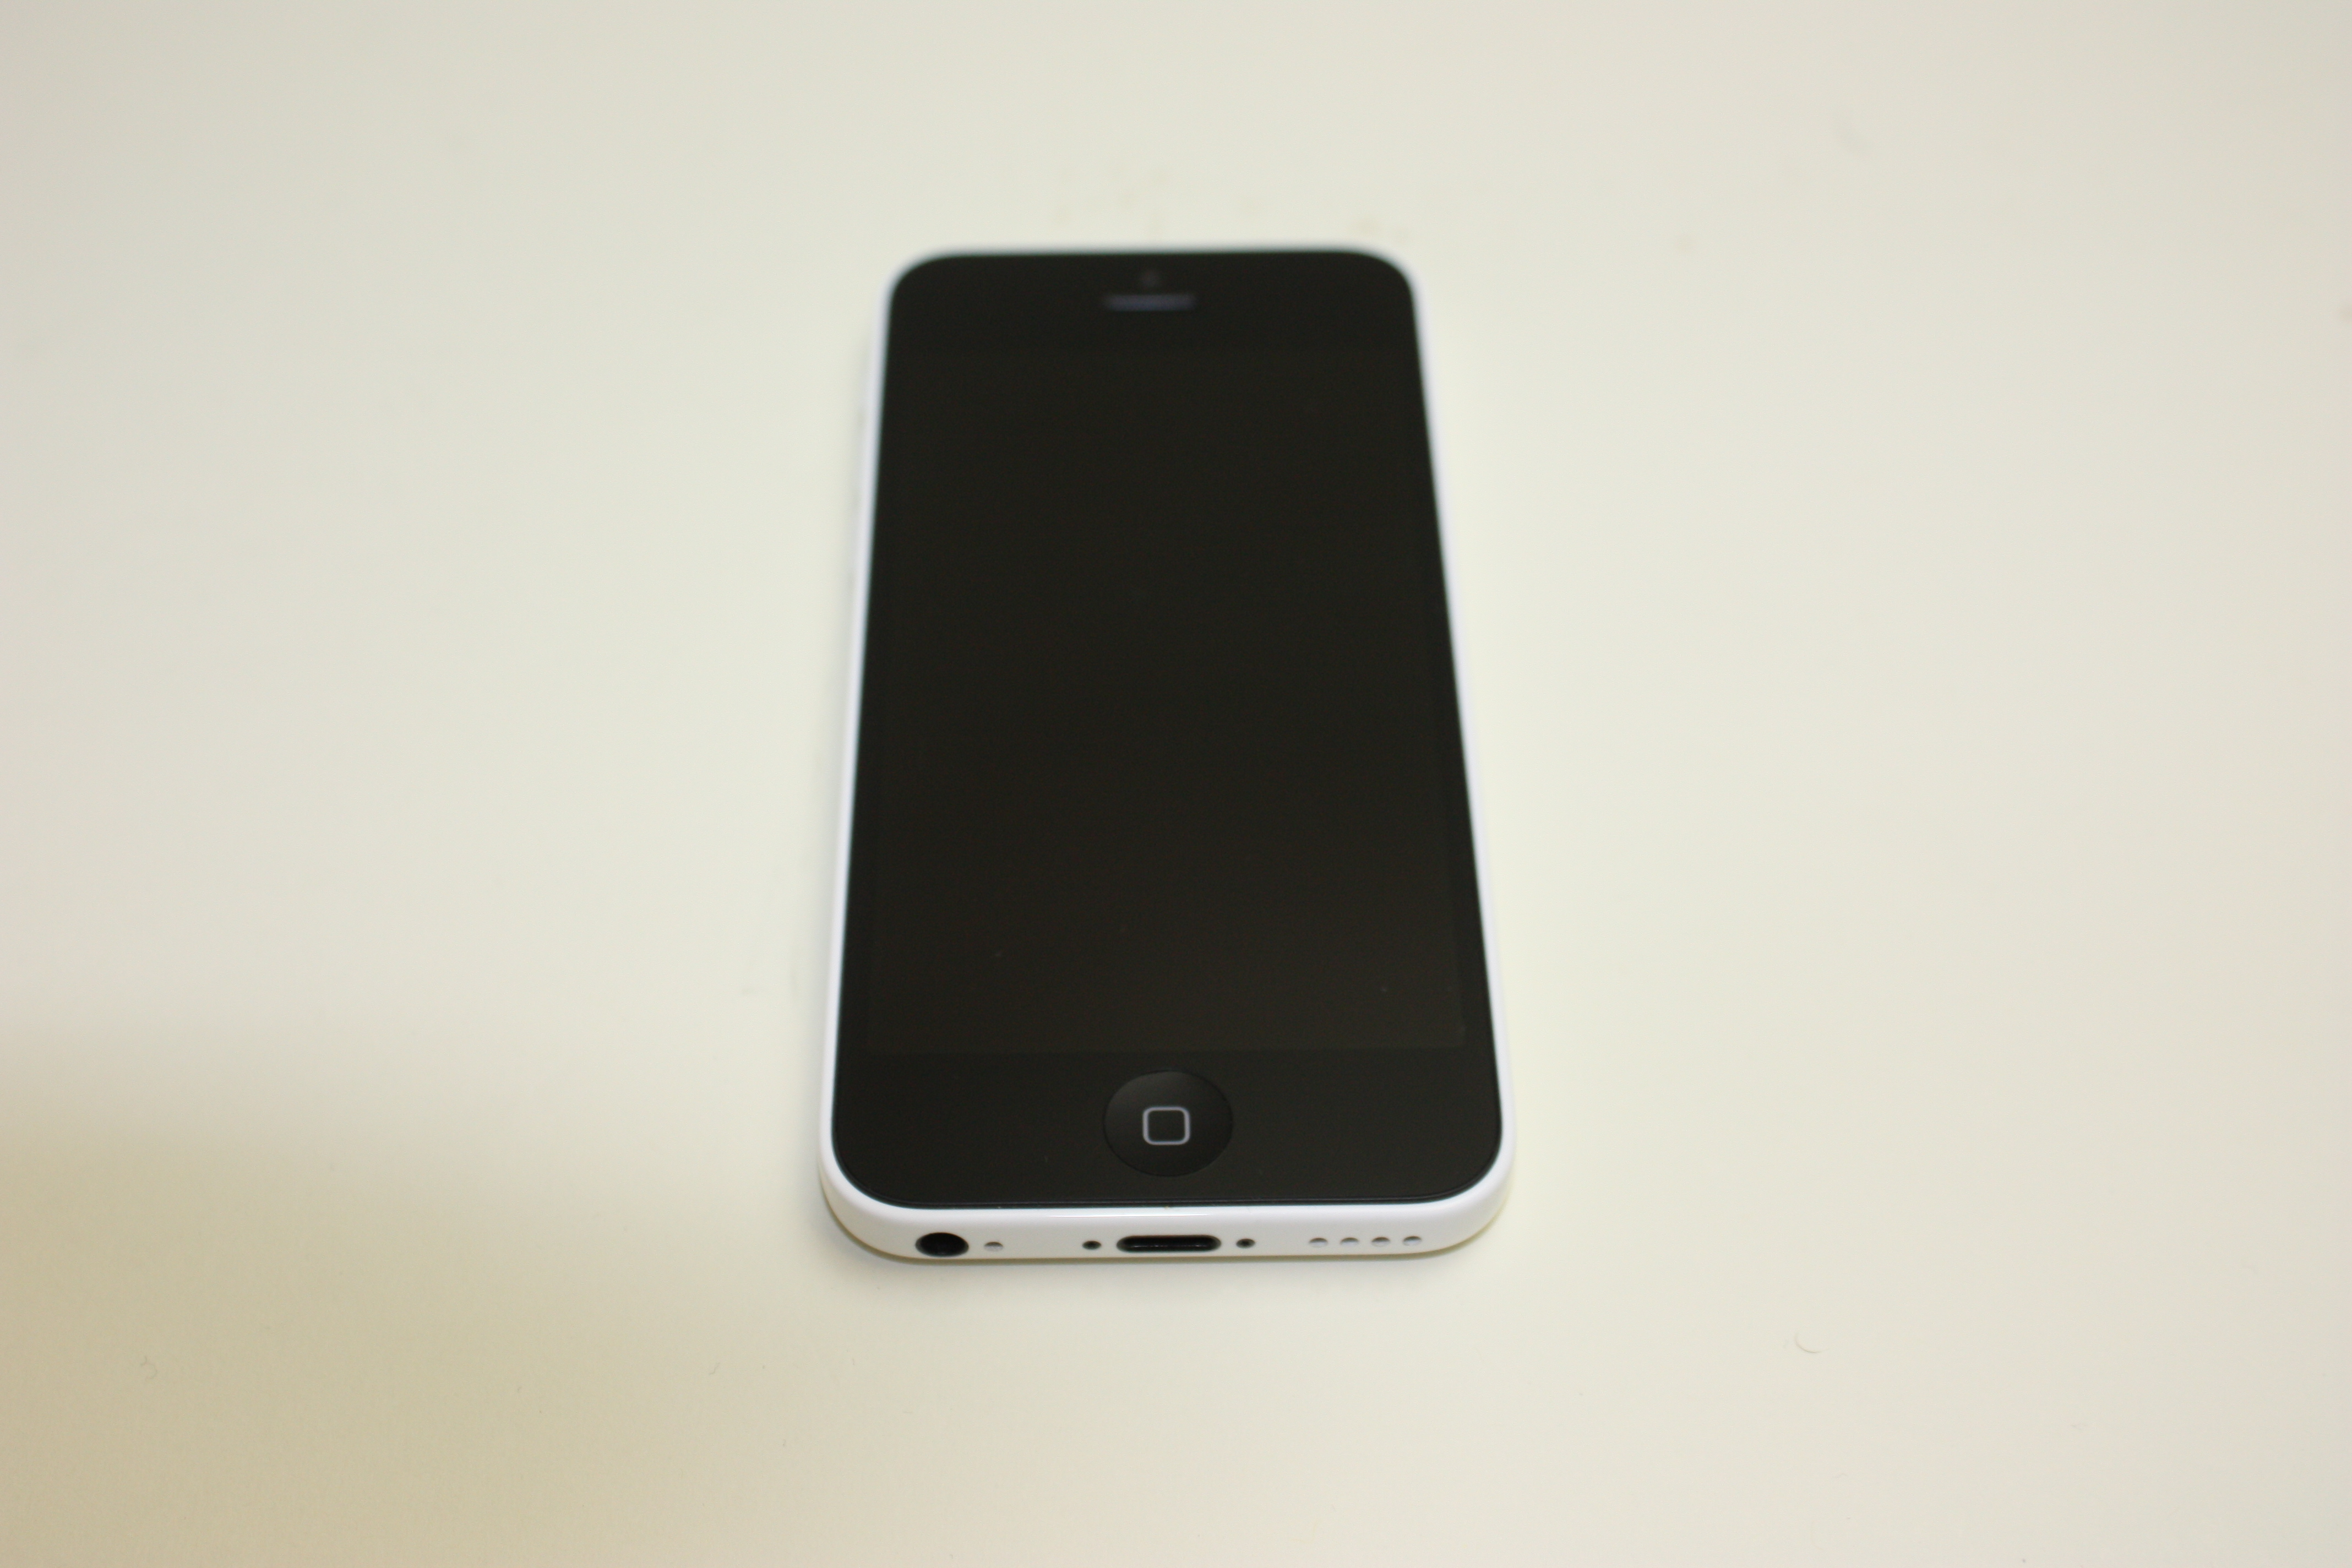 iPhone 5c, 8 GB, White, Product age: 35 months, image 1